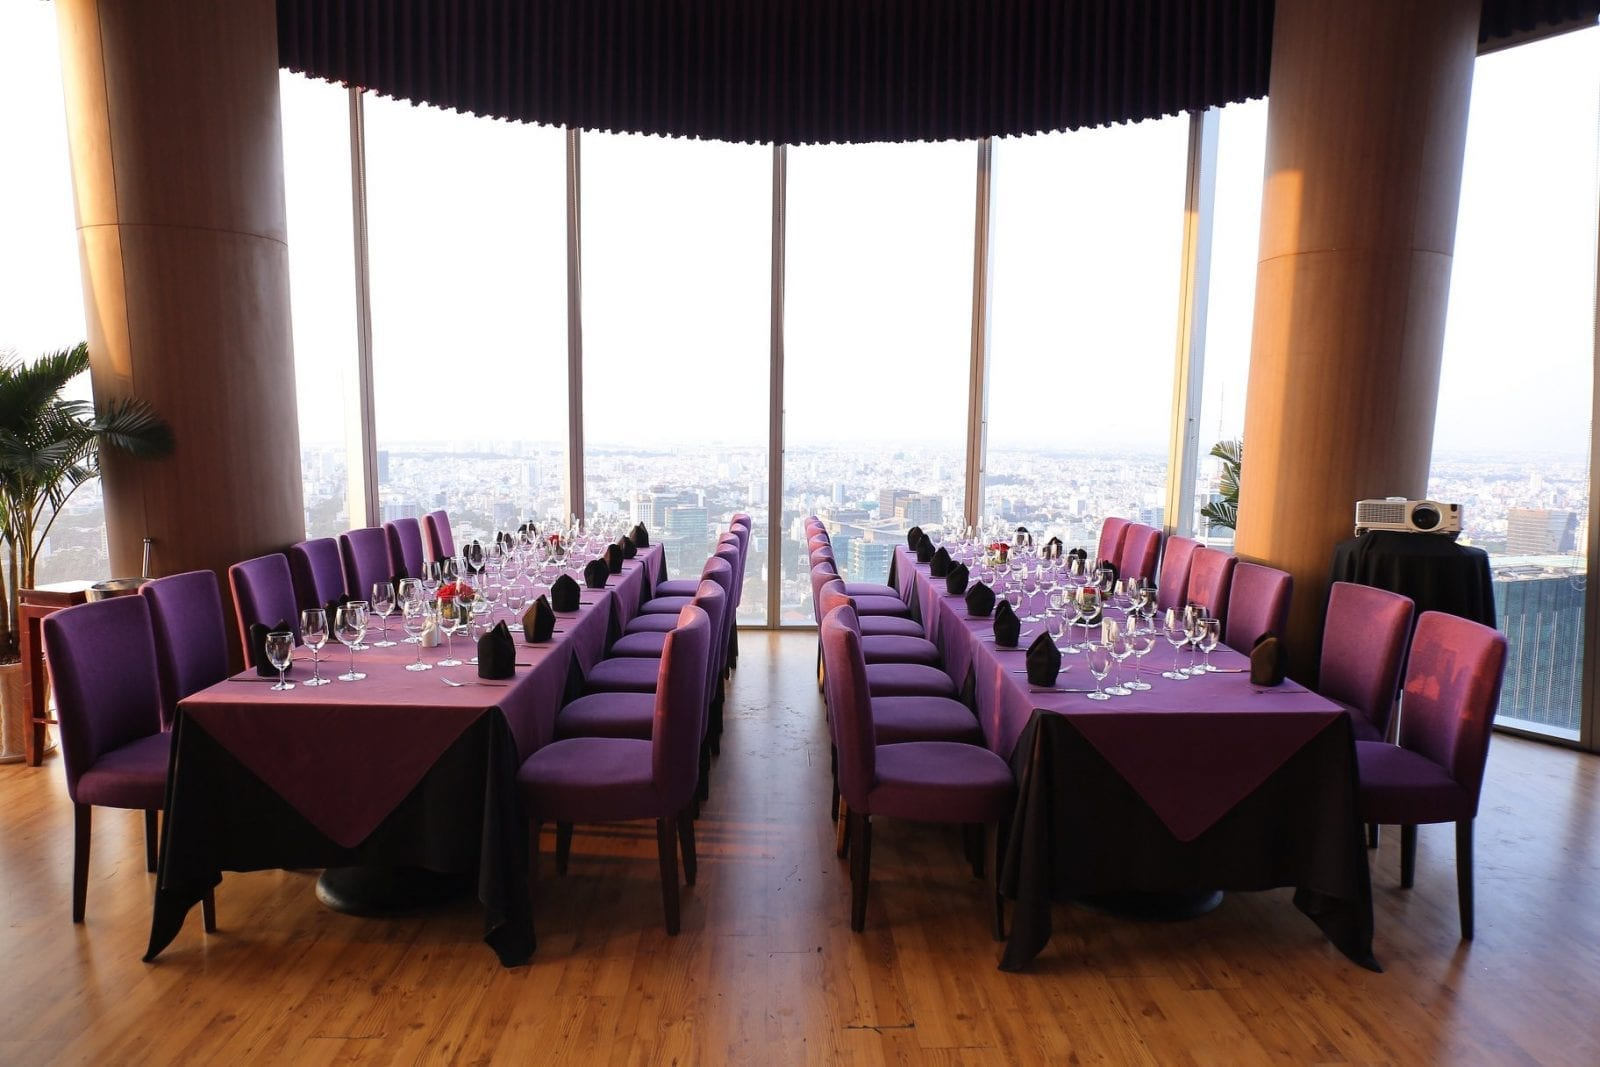 Image of tables set up for a party at Eon51 Restaurant & Lounge in HCMC, Vietnam